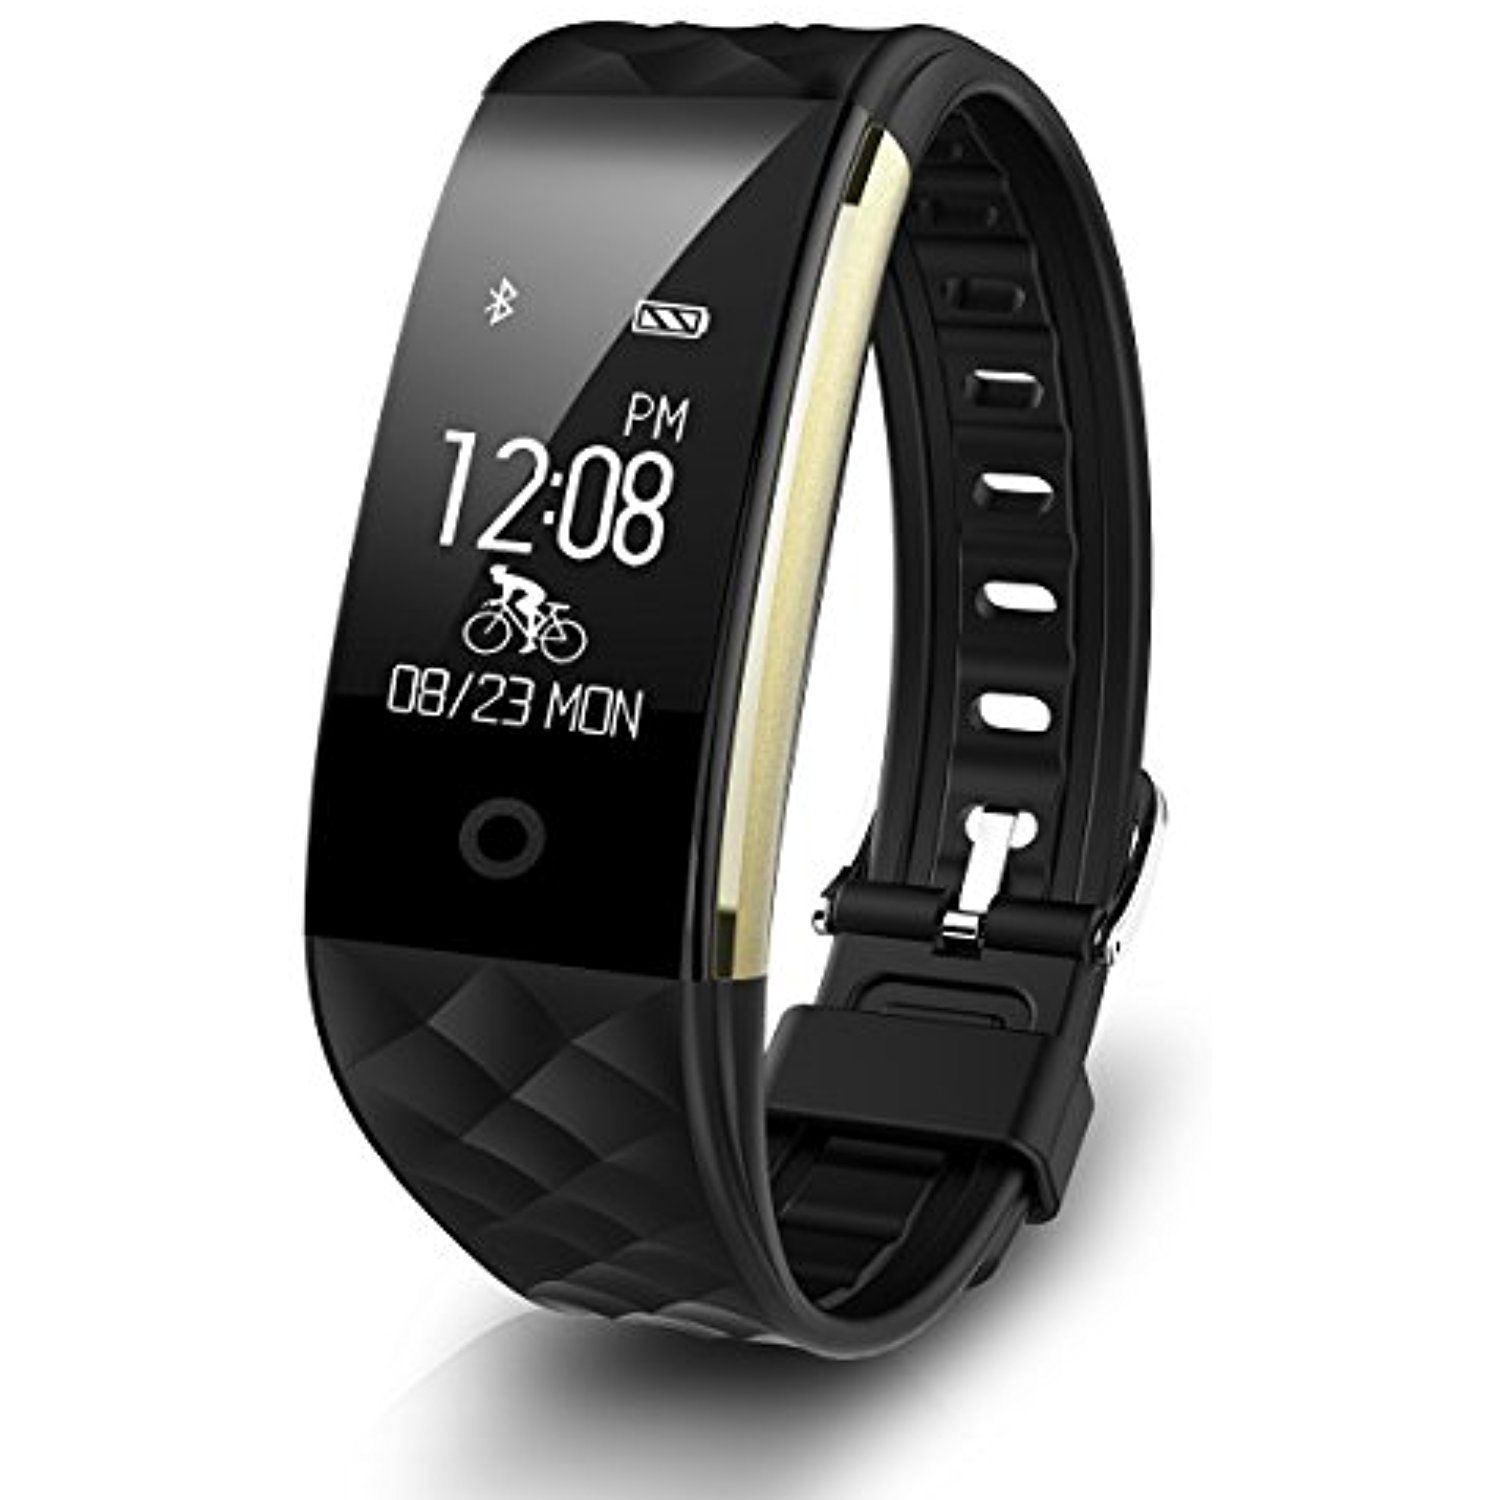 Diggro S2 Smart Bracelet Sports Fitness Tracker Heart Rate Sleep Quality Monitor Call/SMS Reminder IP67 Waterproof for Android IOS >>> Read more at the image link. (This is an affiliate link) #ExerciseFitness